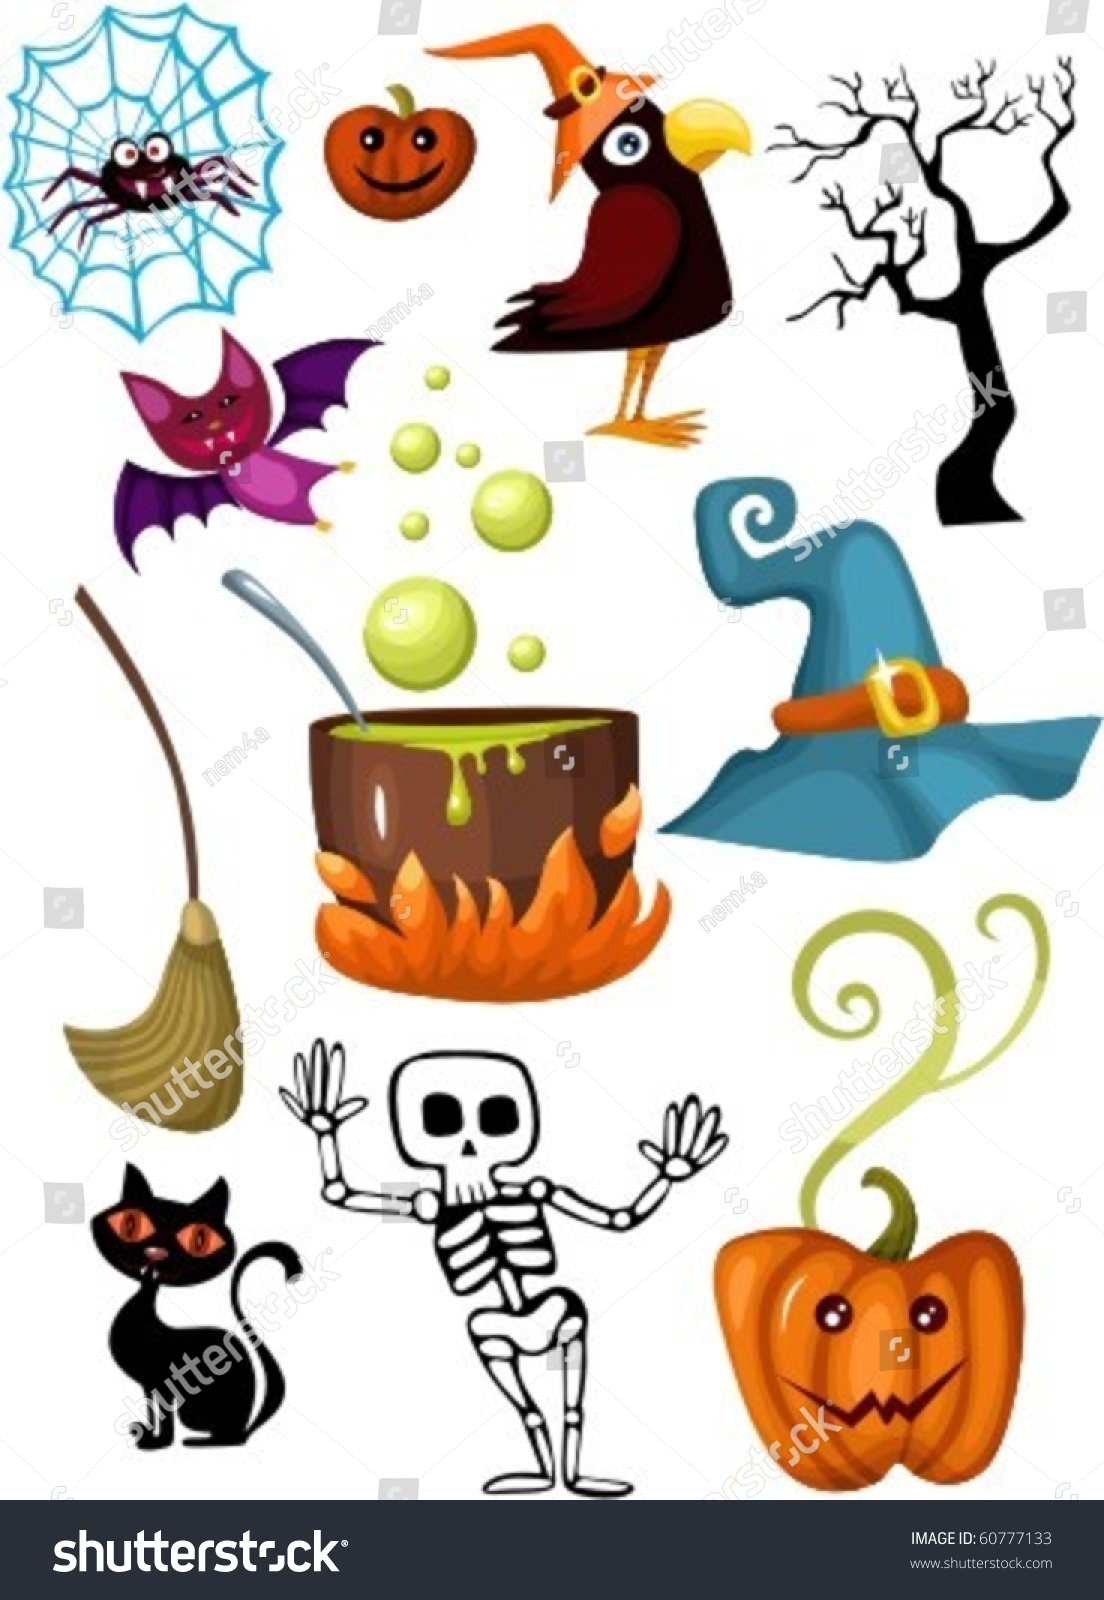 Halloween Hema Halloween Set Stock Vector Royalty Free 60777133 Shutterstock